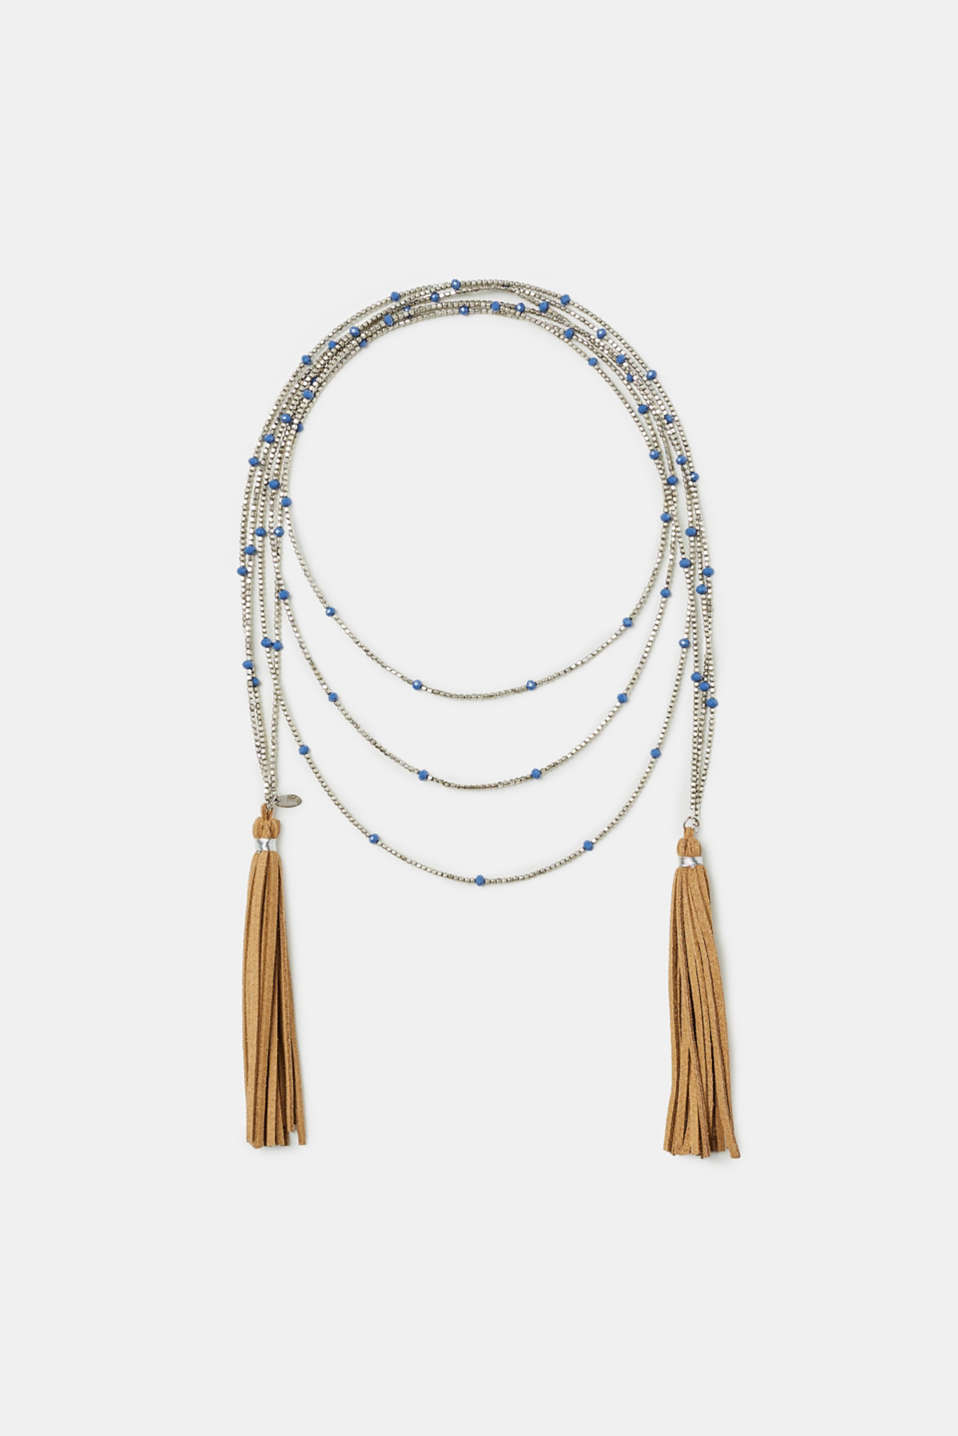 Esprit - Beaded necklace with faux leather tassels